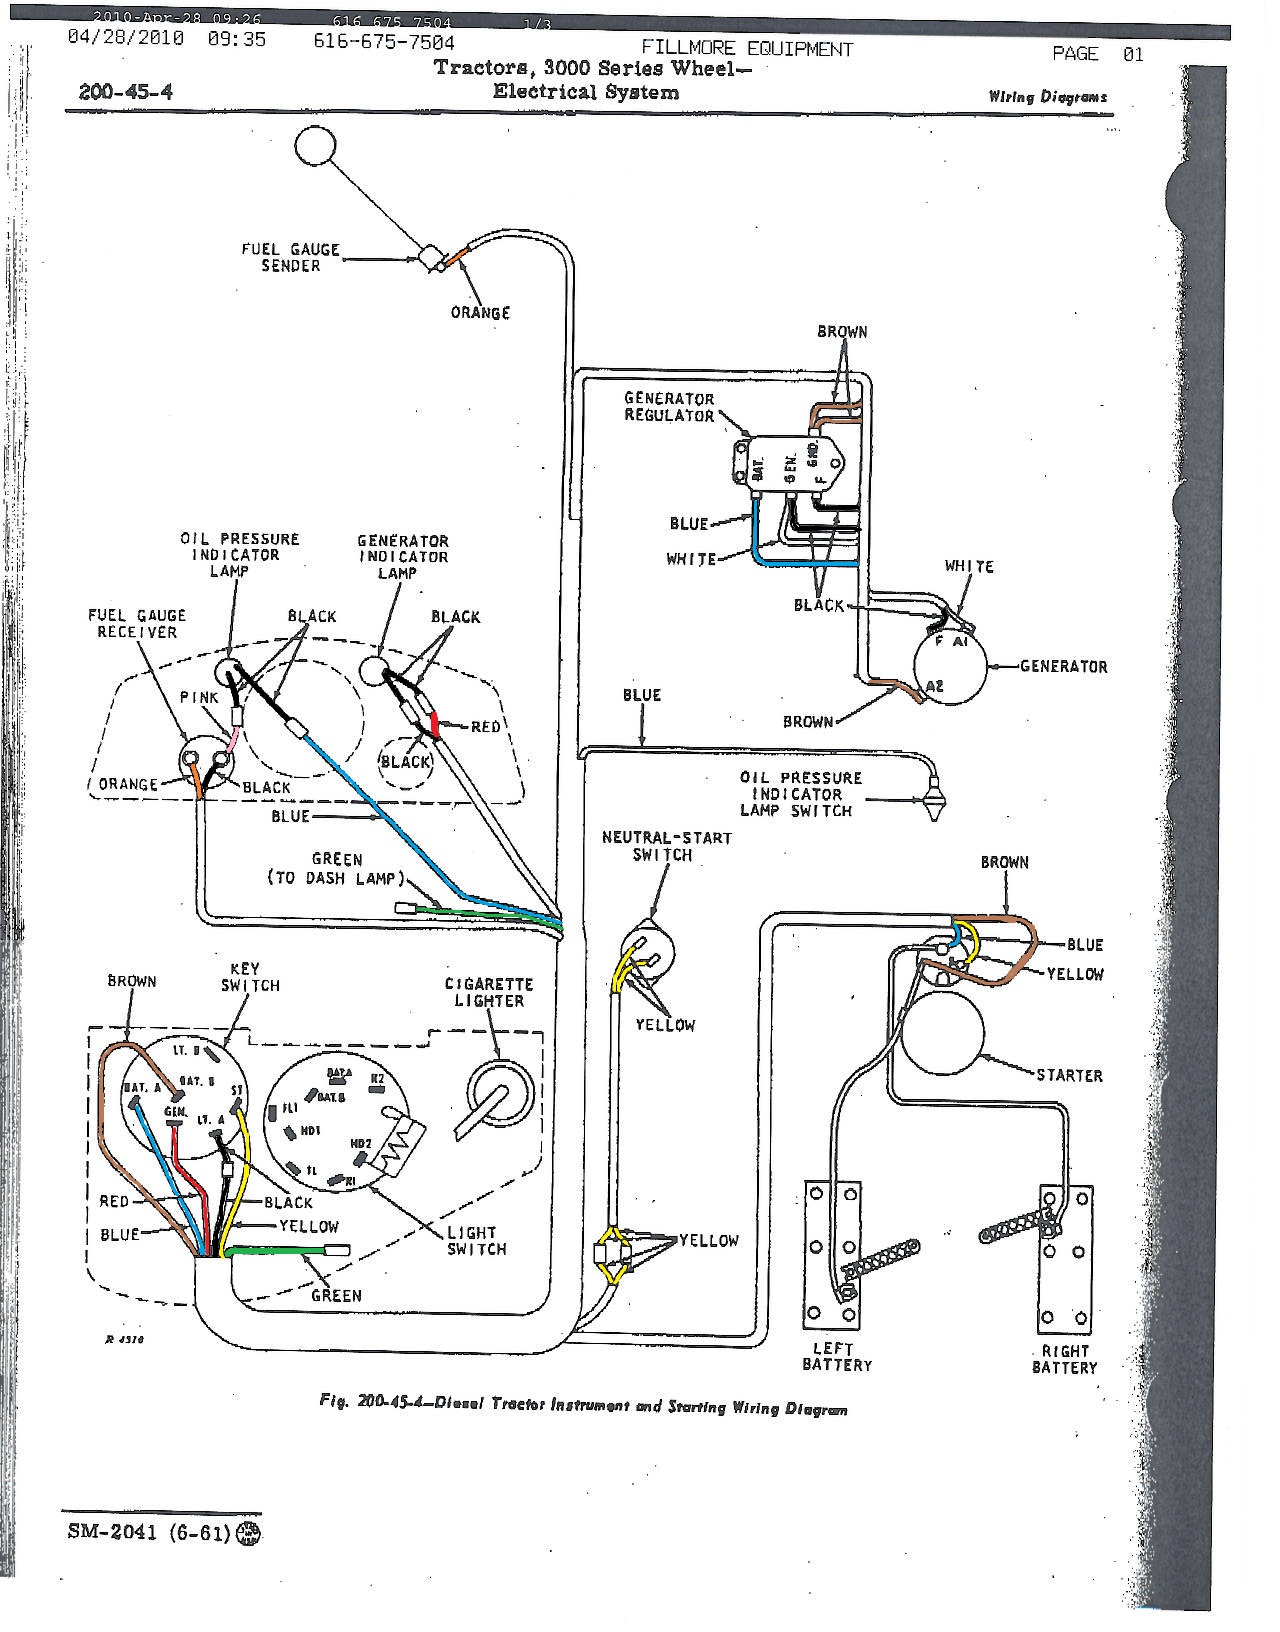 hight resolution of john deere tractor wiring diagrams wiring diagram origin john deere 355d wiring diagram 3010 214 john